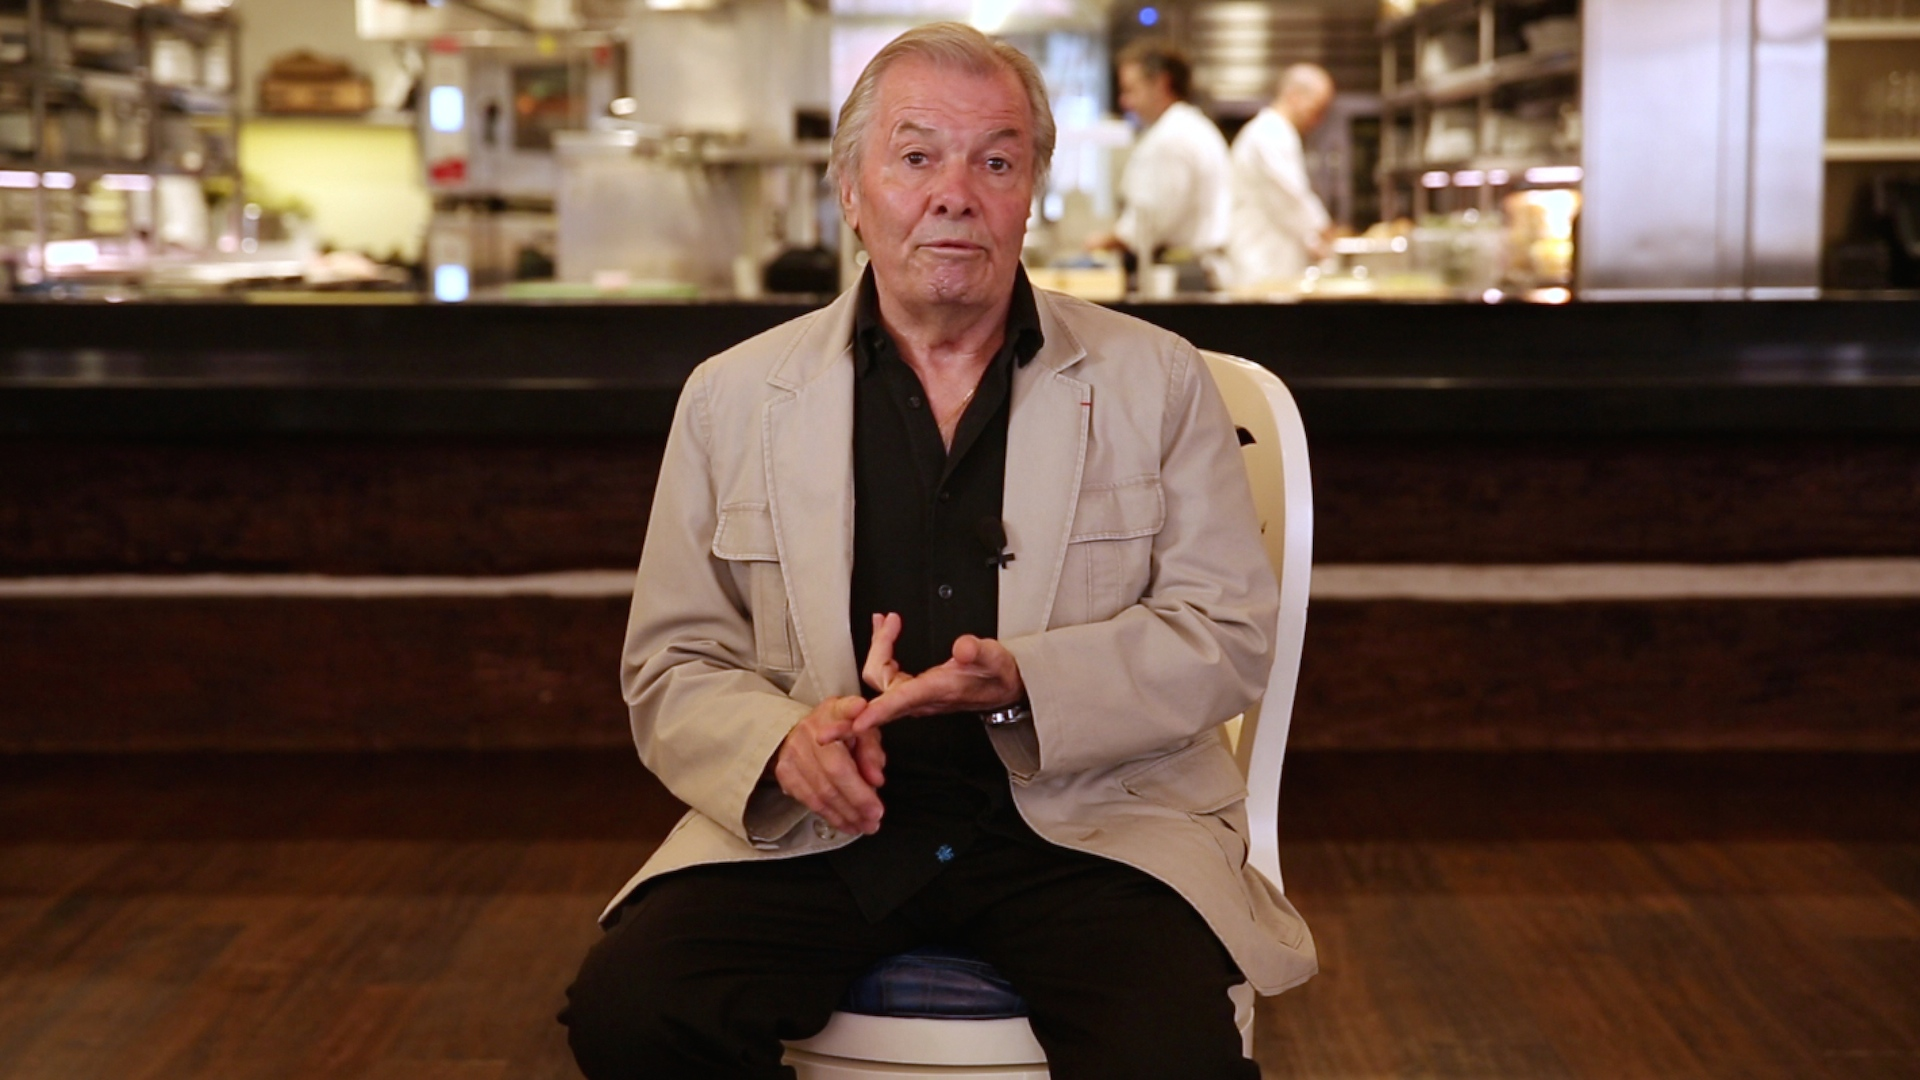 Jacques Pépin: Cooking for World Leaders